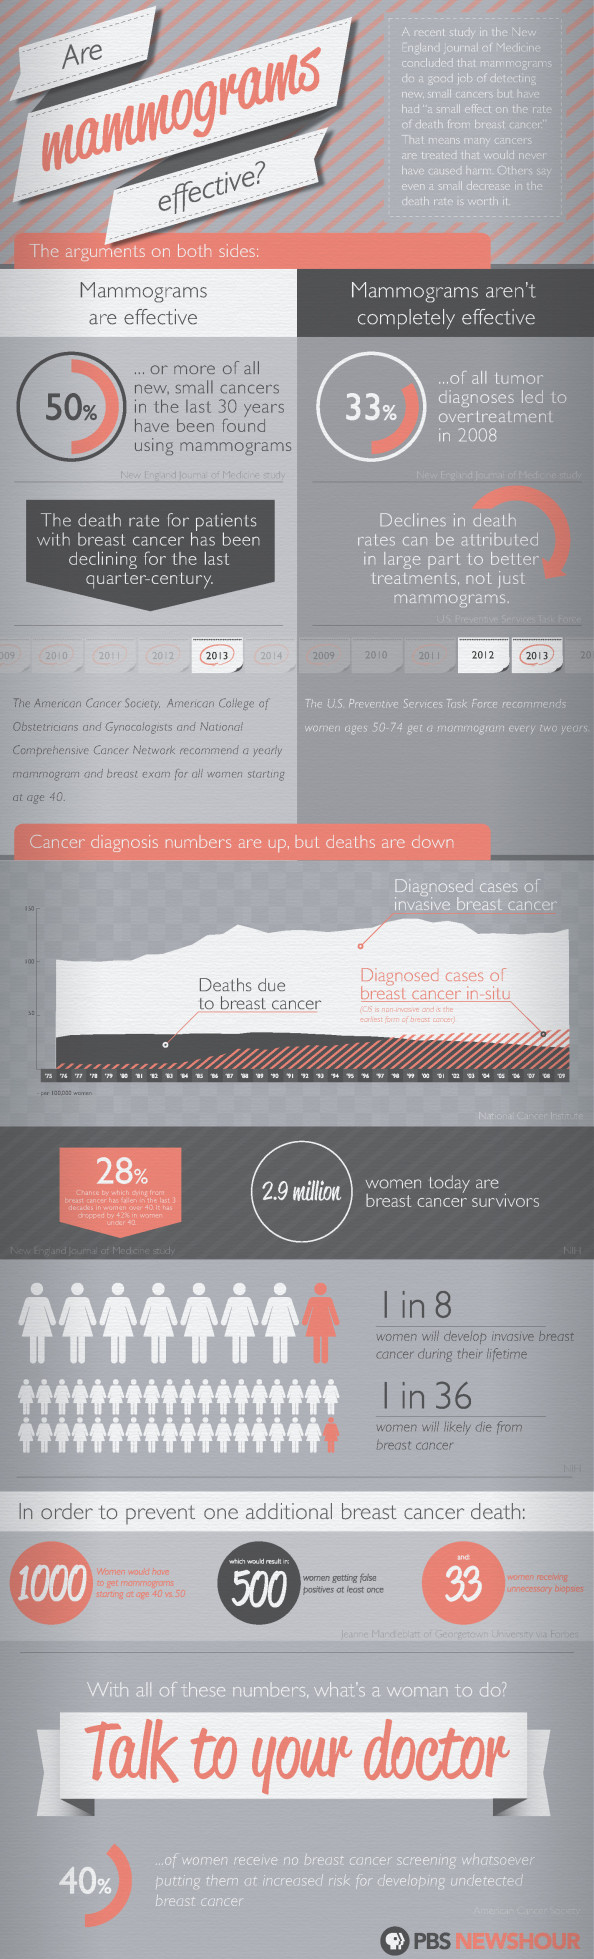 Are Mammograms Effective? Infographic